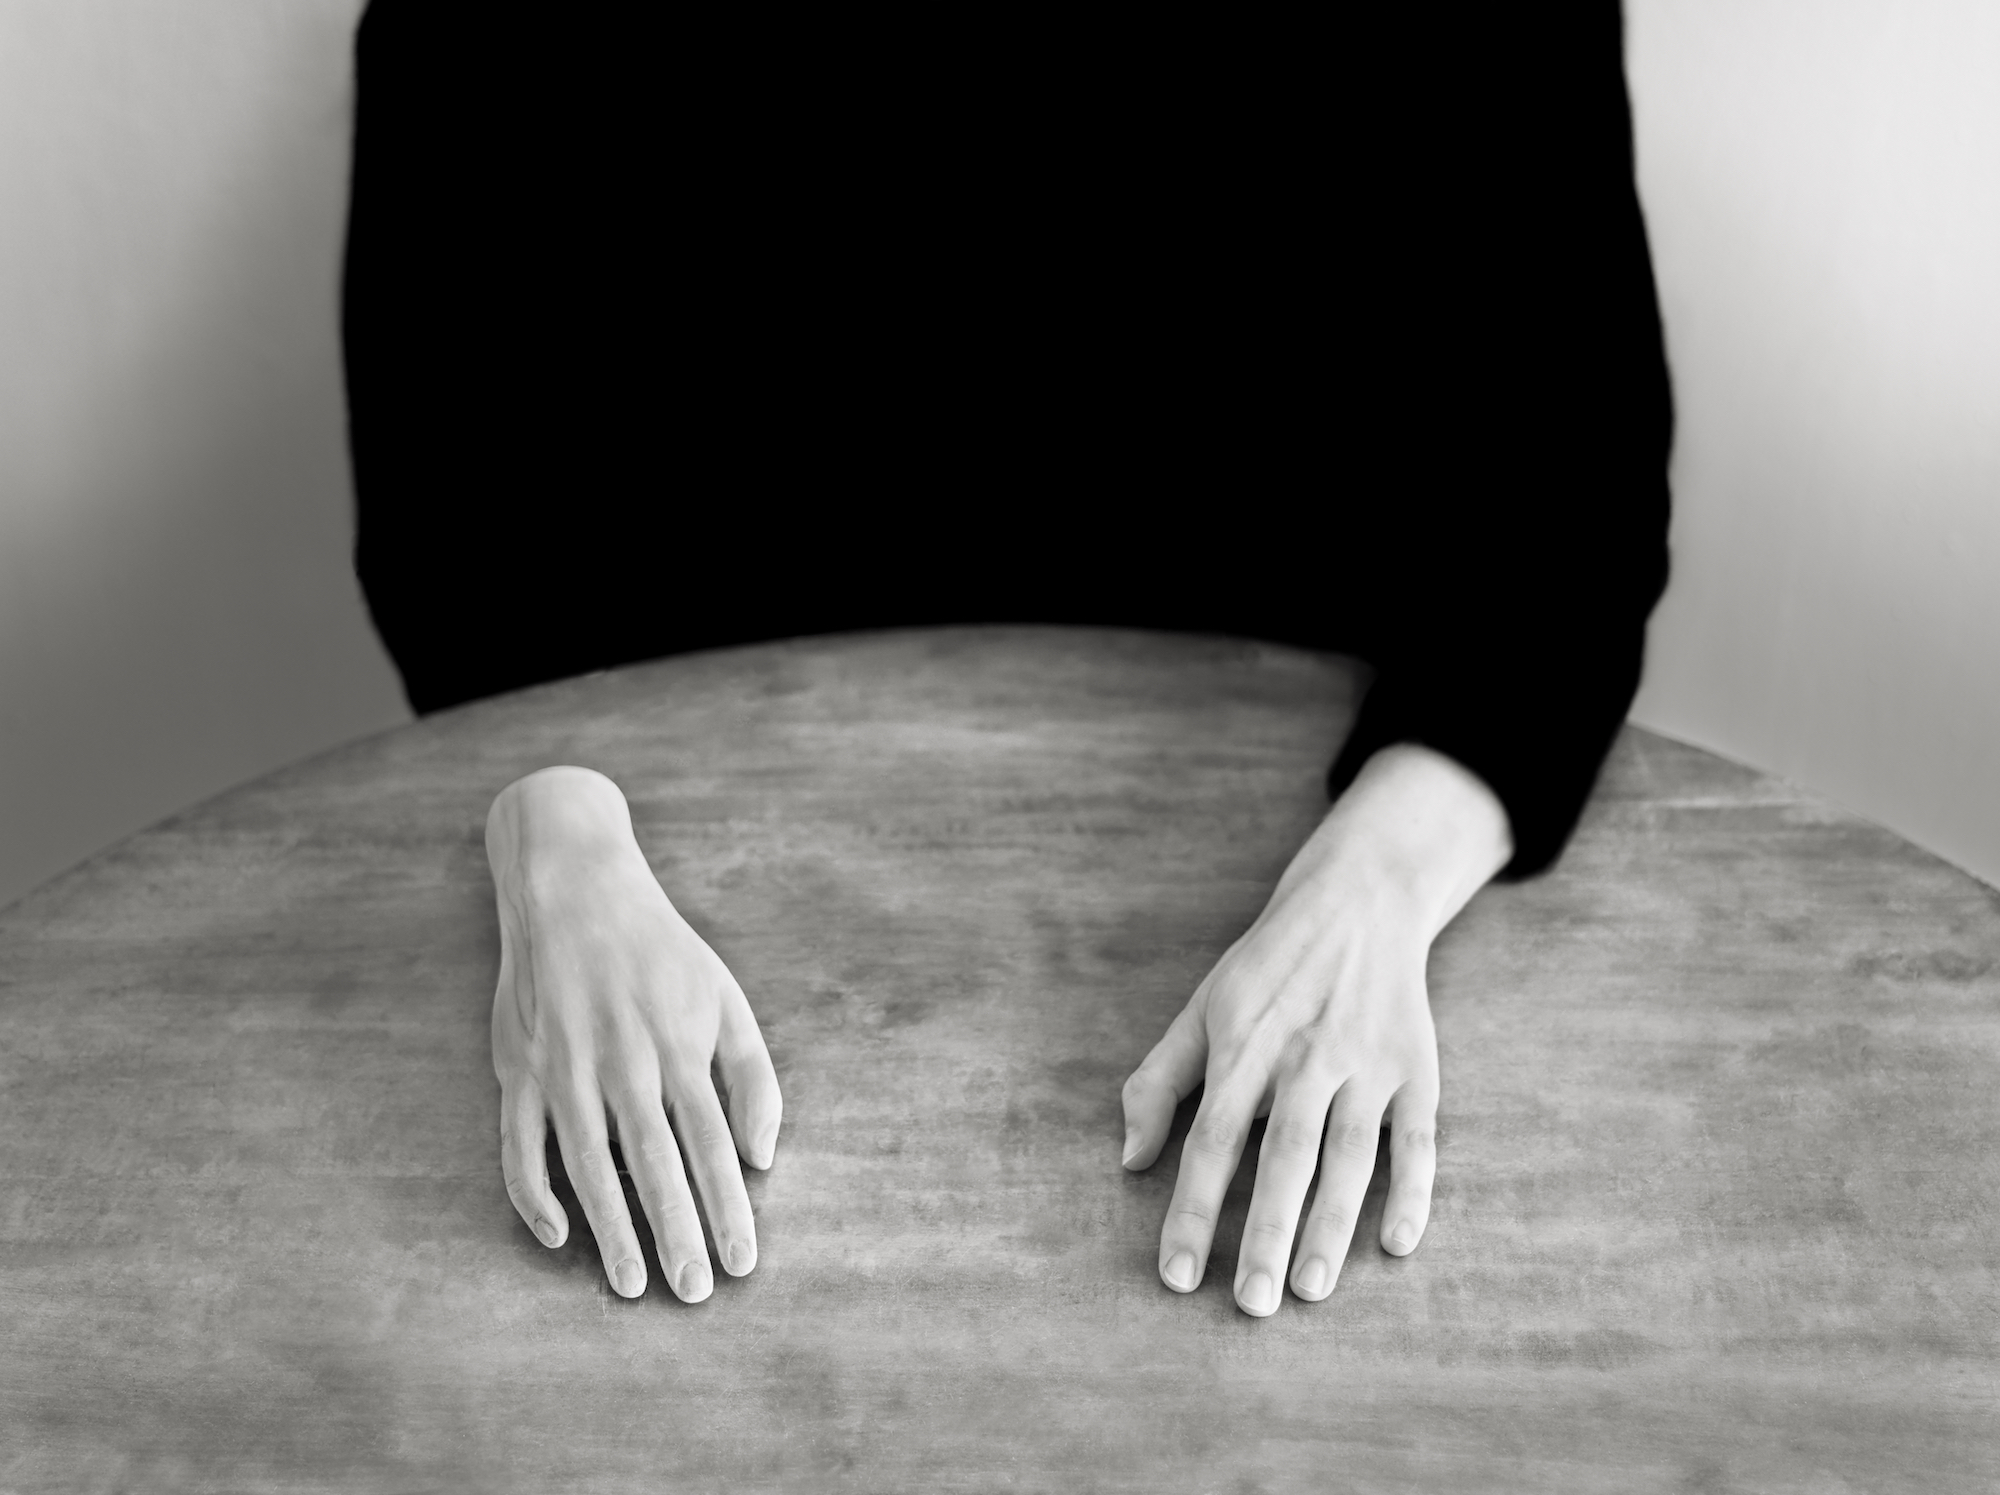 The Other Hand, 2020, Silver gelatin print mounted on aluminium, museum glass, walnut frame 52,5 x 69 cm, edition of 5